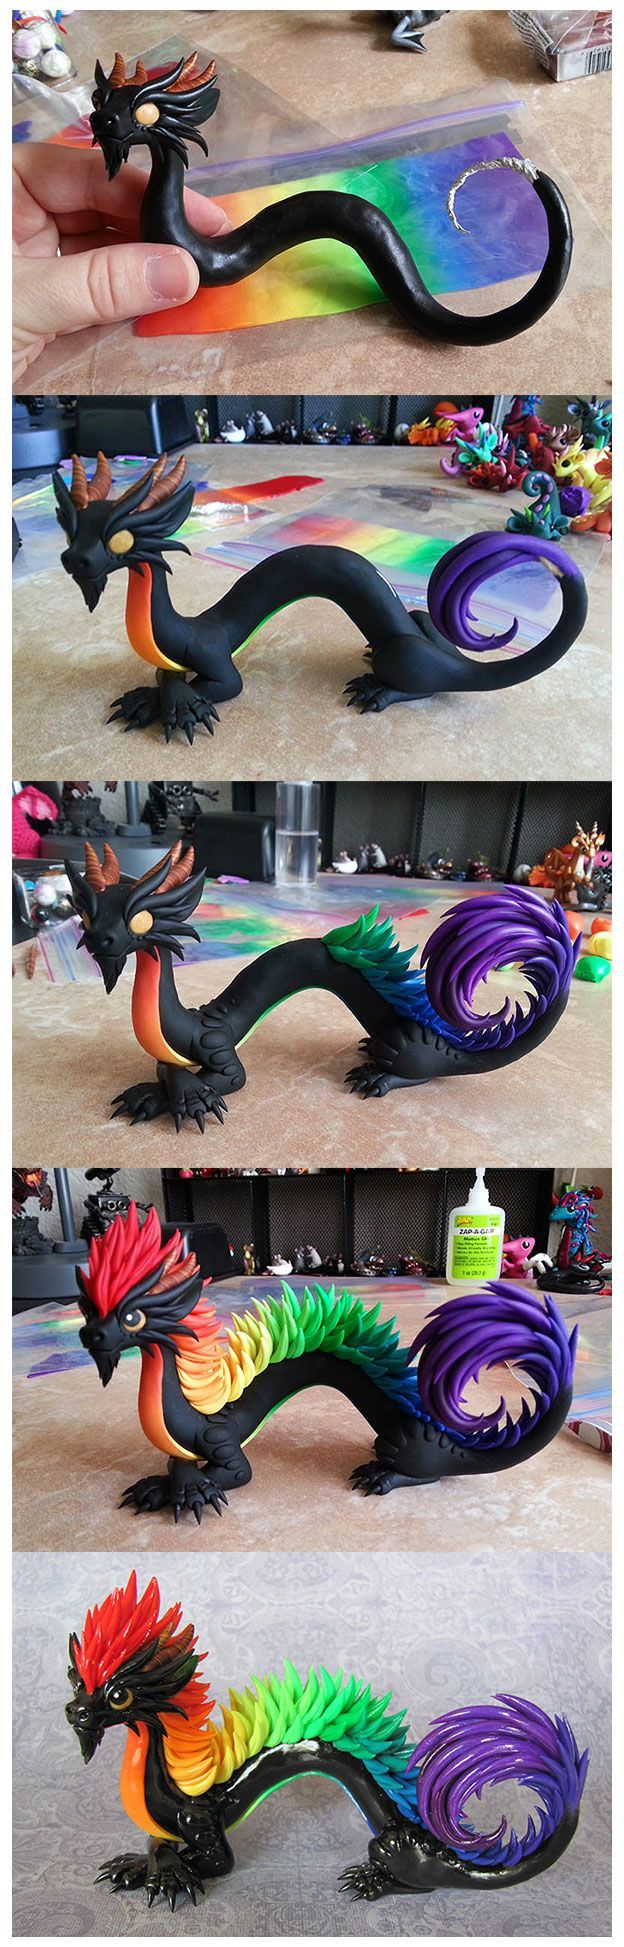 98 Best Dragons Images On Pinterest Cold Porcelain Elves And Modeling Origami Sword Diagram Http Wwworigamimakecom Easyorigamisword Oriental Rainbow Progress By Dragonsandbeastie Deviantart